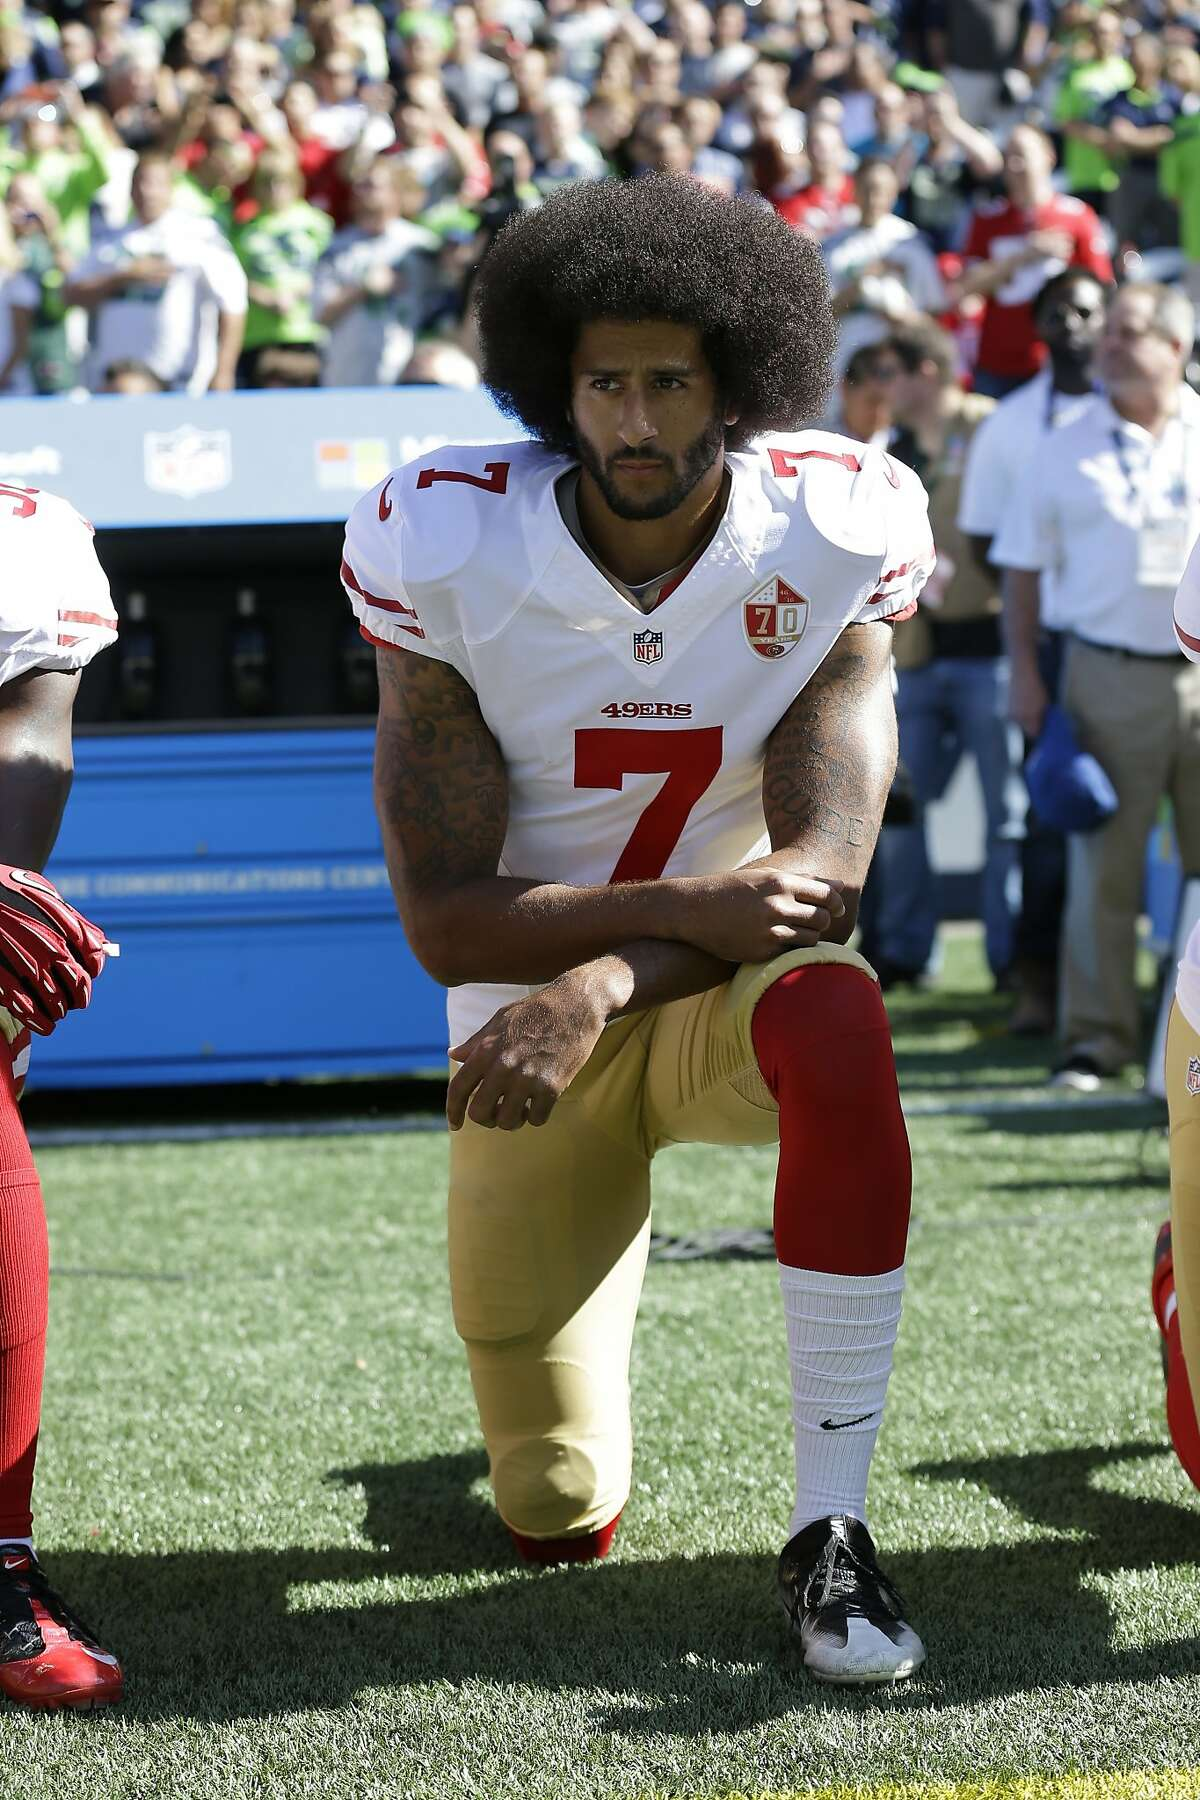 Was Kaepernick against the anthem? In recent times San Francisco 49ers' Colin Kaepernick sparked new debate about the country's anthem when he began kneeling during the national anthem before NFL games. His peaceful demonstrations of kneeling during the national anthem were misconstrued by many as being un-American, as representing protests against the flag and